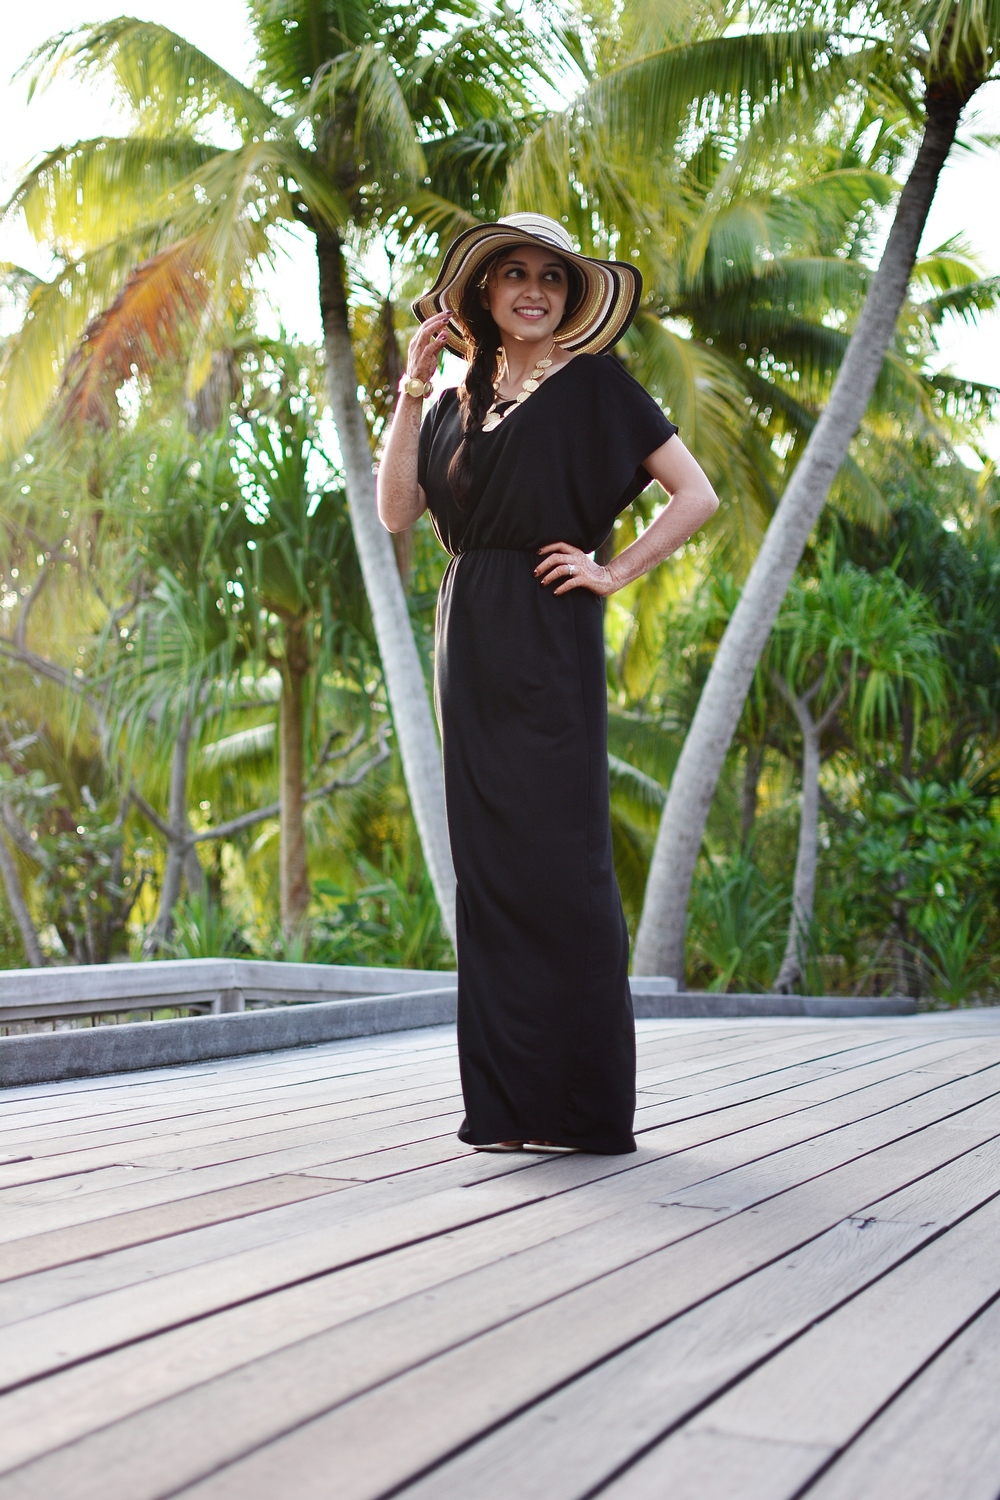 black maxi dress summer weather bora bora le meridian tory burch ann taylor floppy hat stripes target sandals modest fashion four seasons bora bora